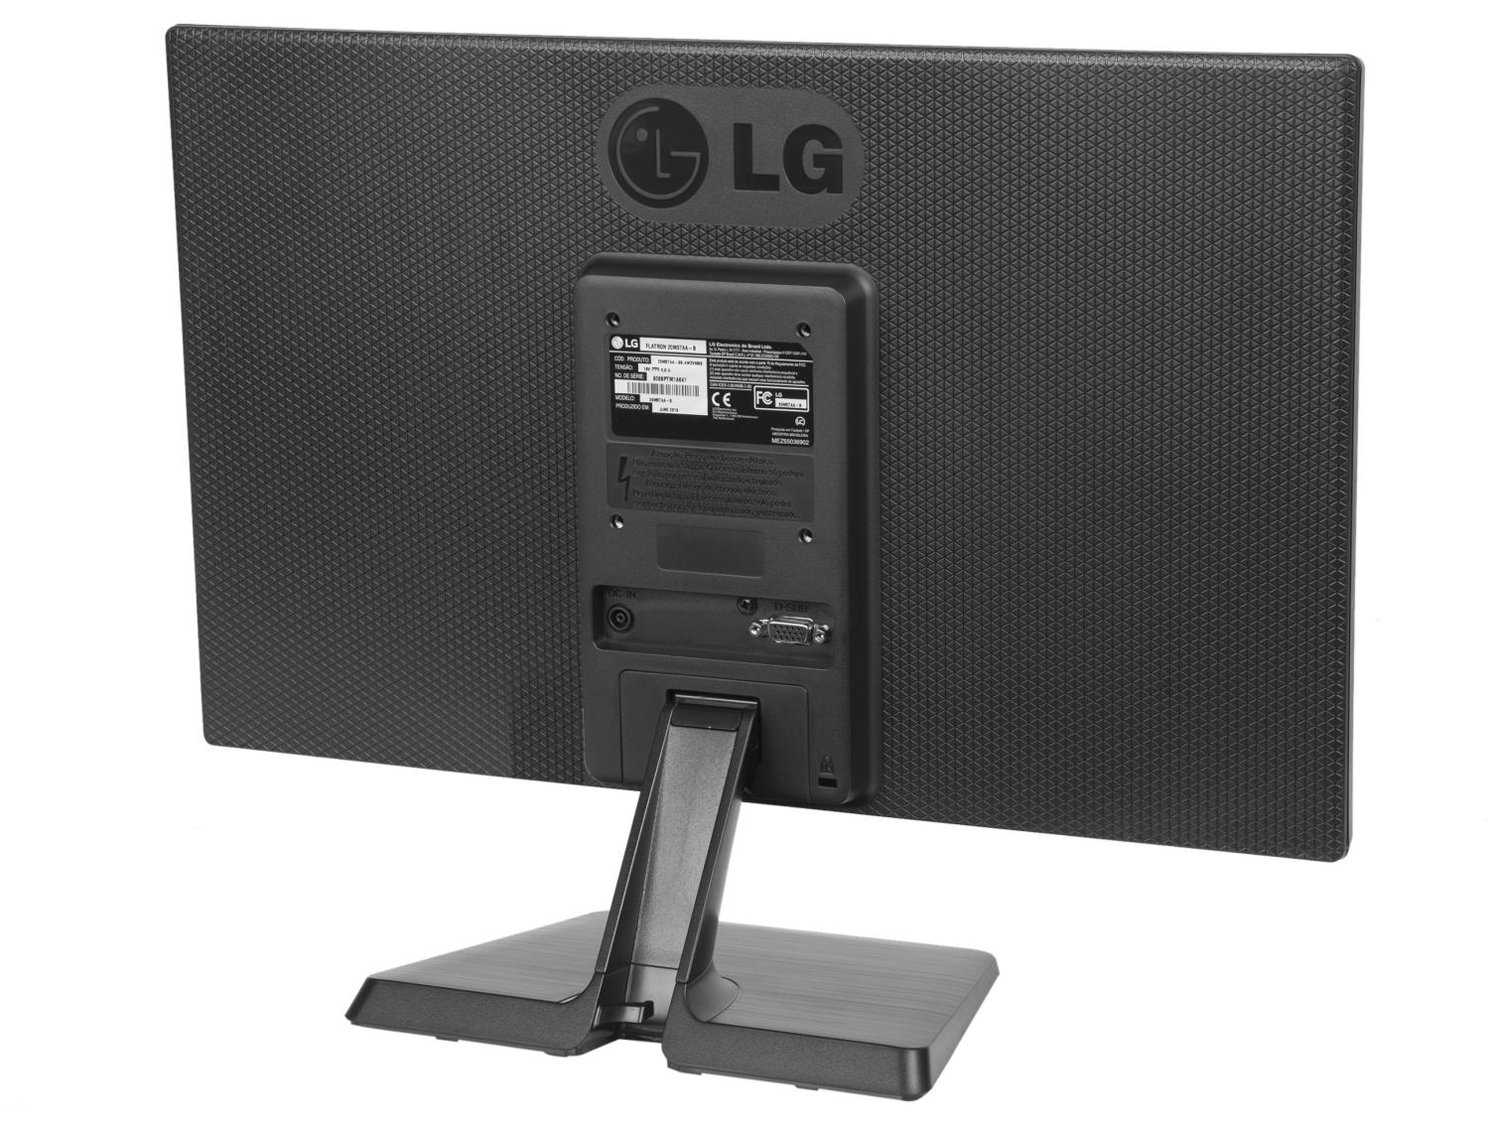 Foto 6 - Monitor para PC LG LED Widescreen 19,5 - 20M37AA